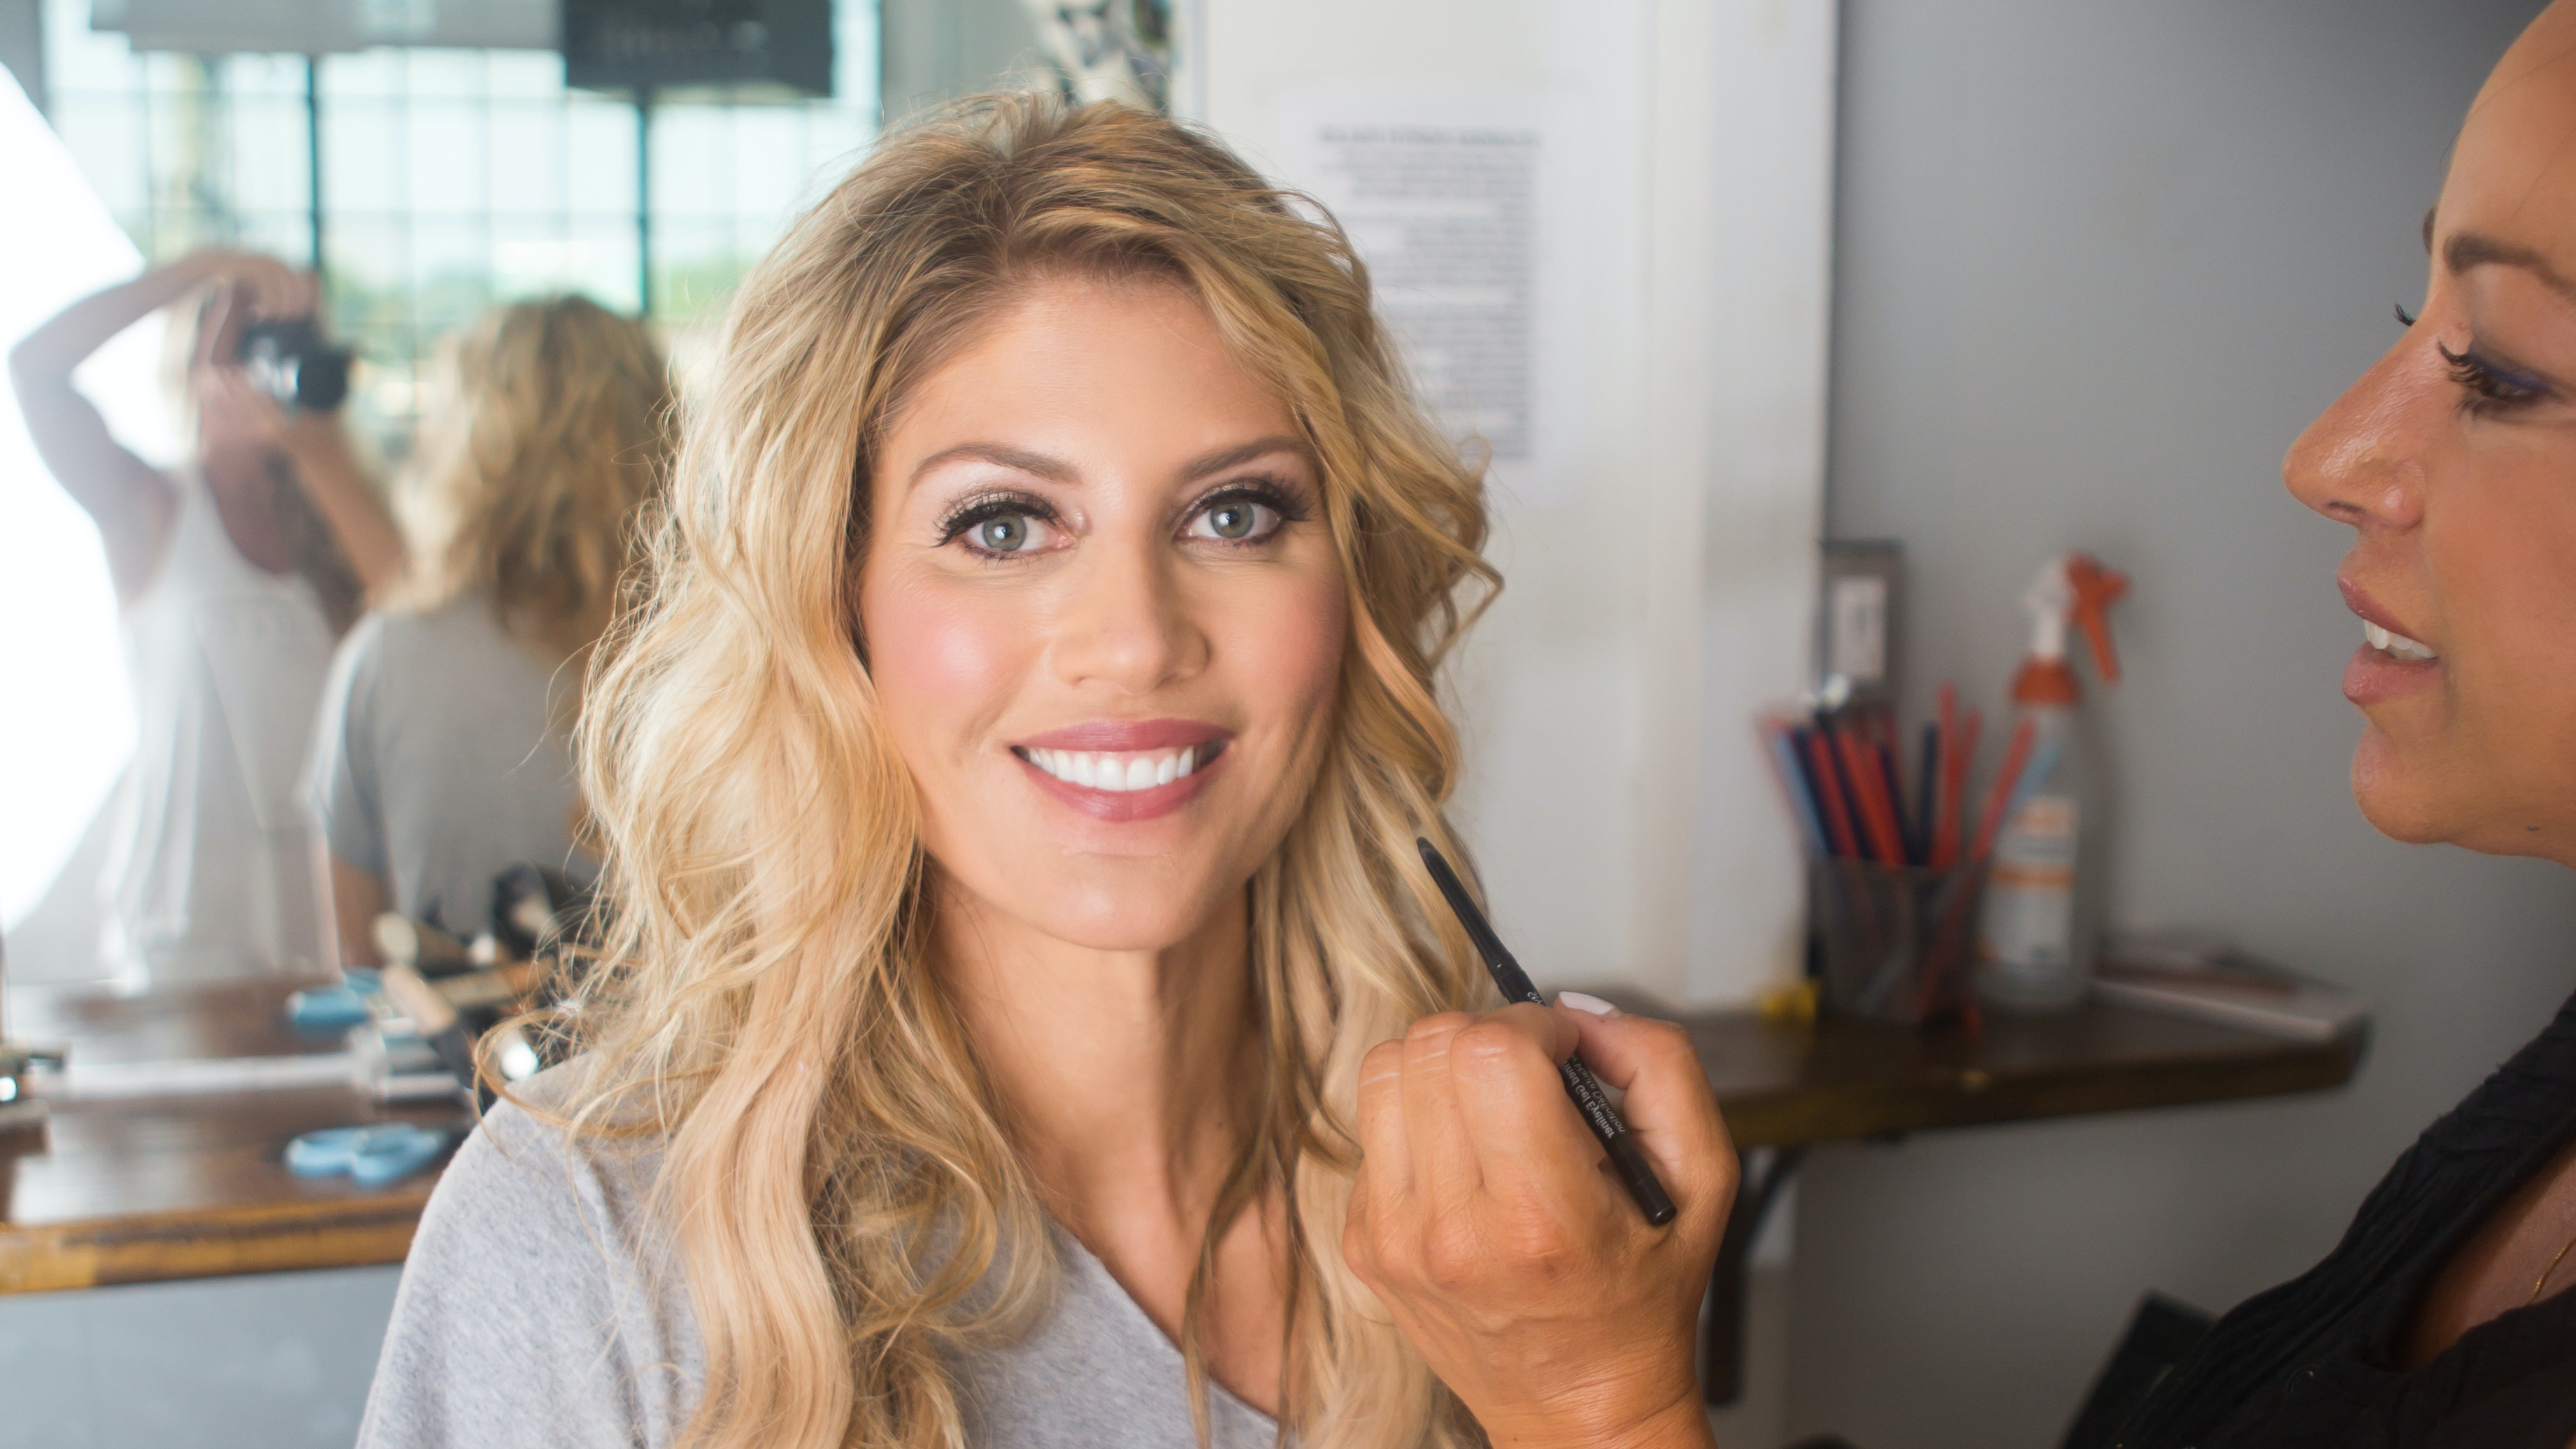 How 1 Concealer Changed This Professional Makeup Artist's Beauty Routine